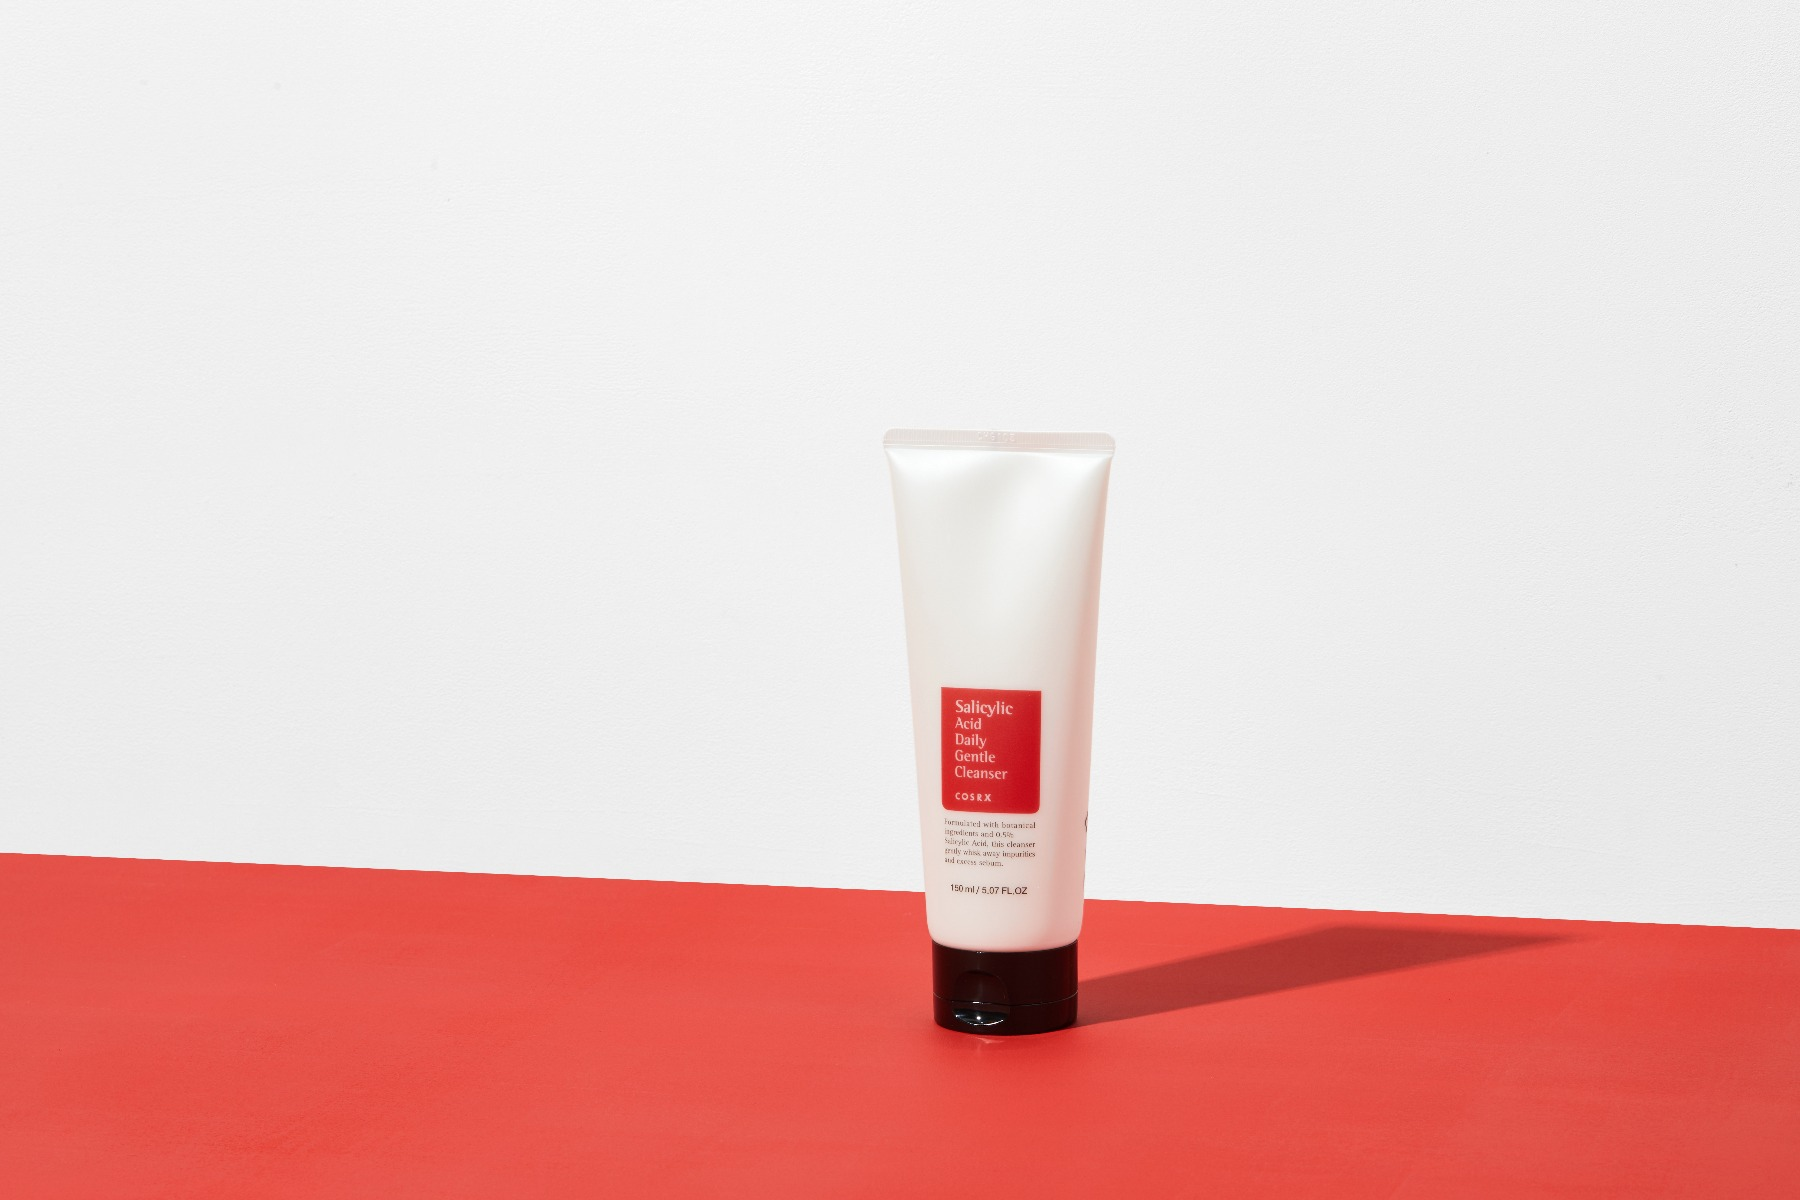 Salicylic Acid Daily Gently Cleanser_Image1